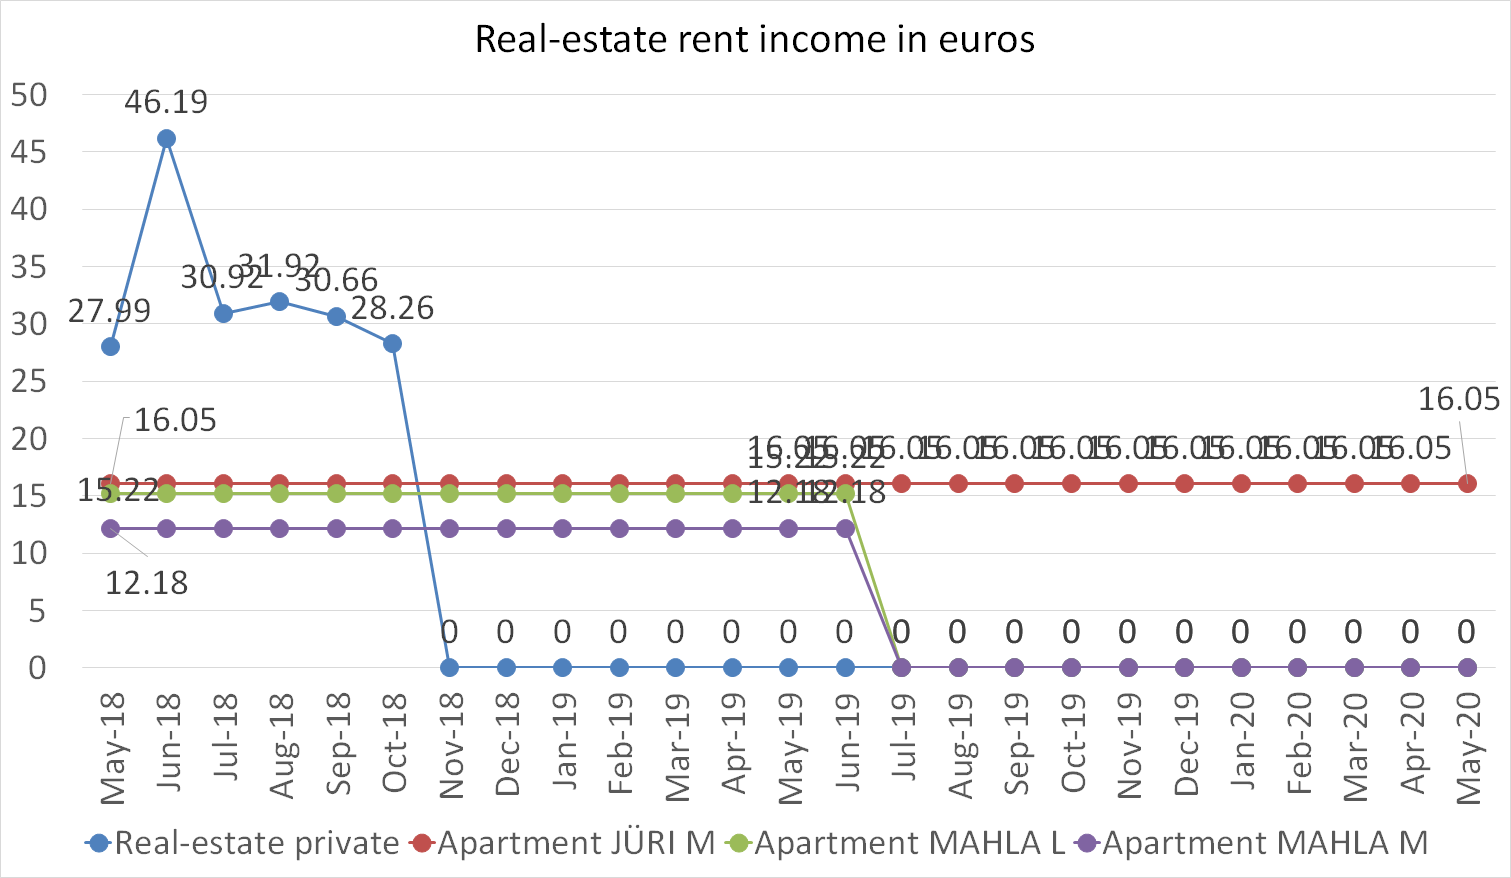 Real-estate rent income in euros may 2020